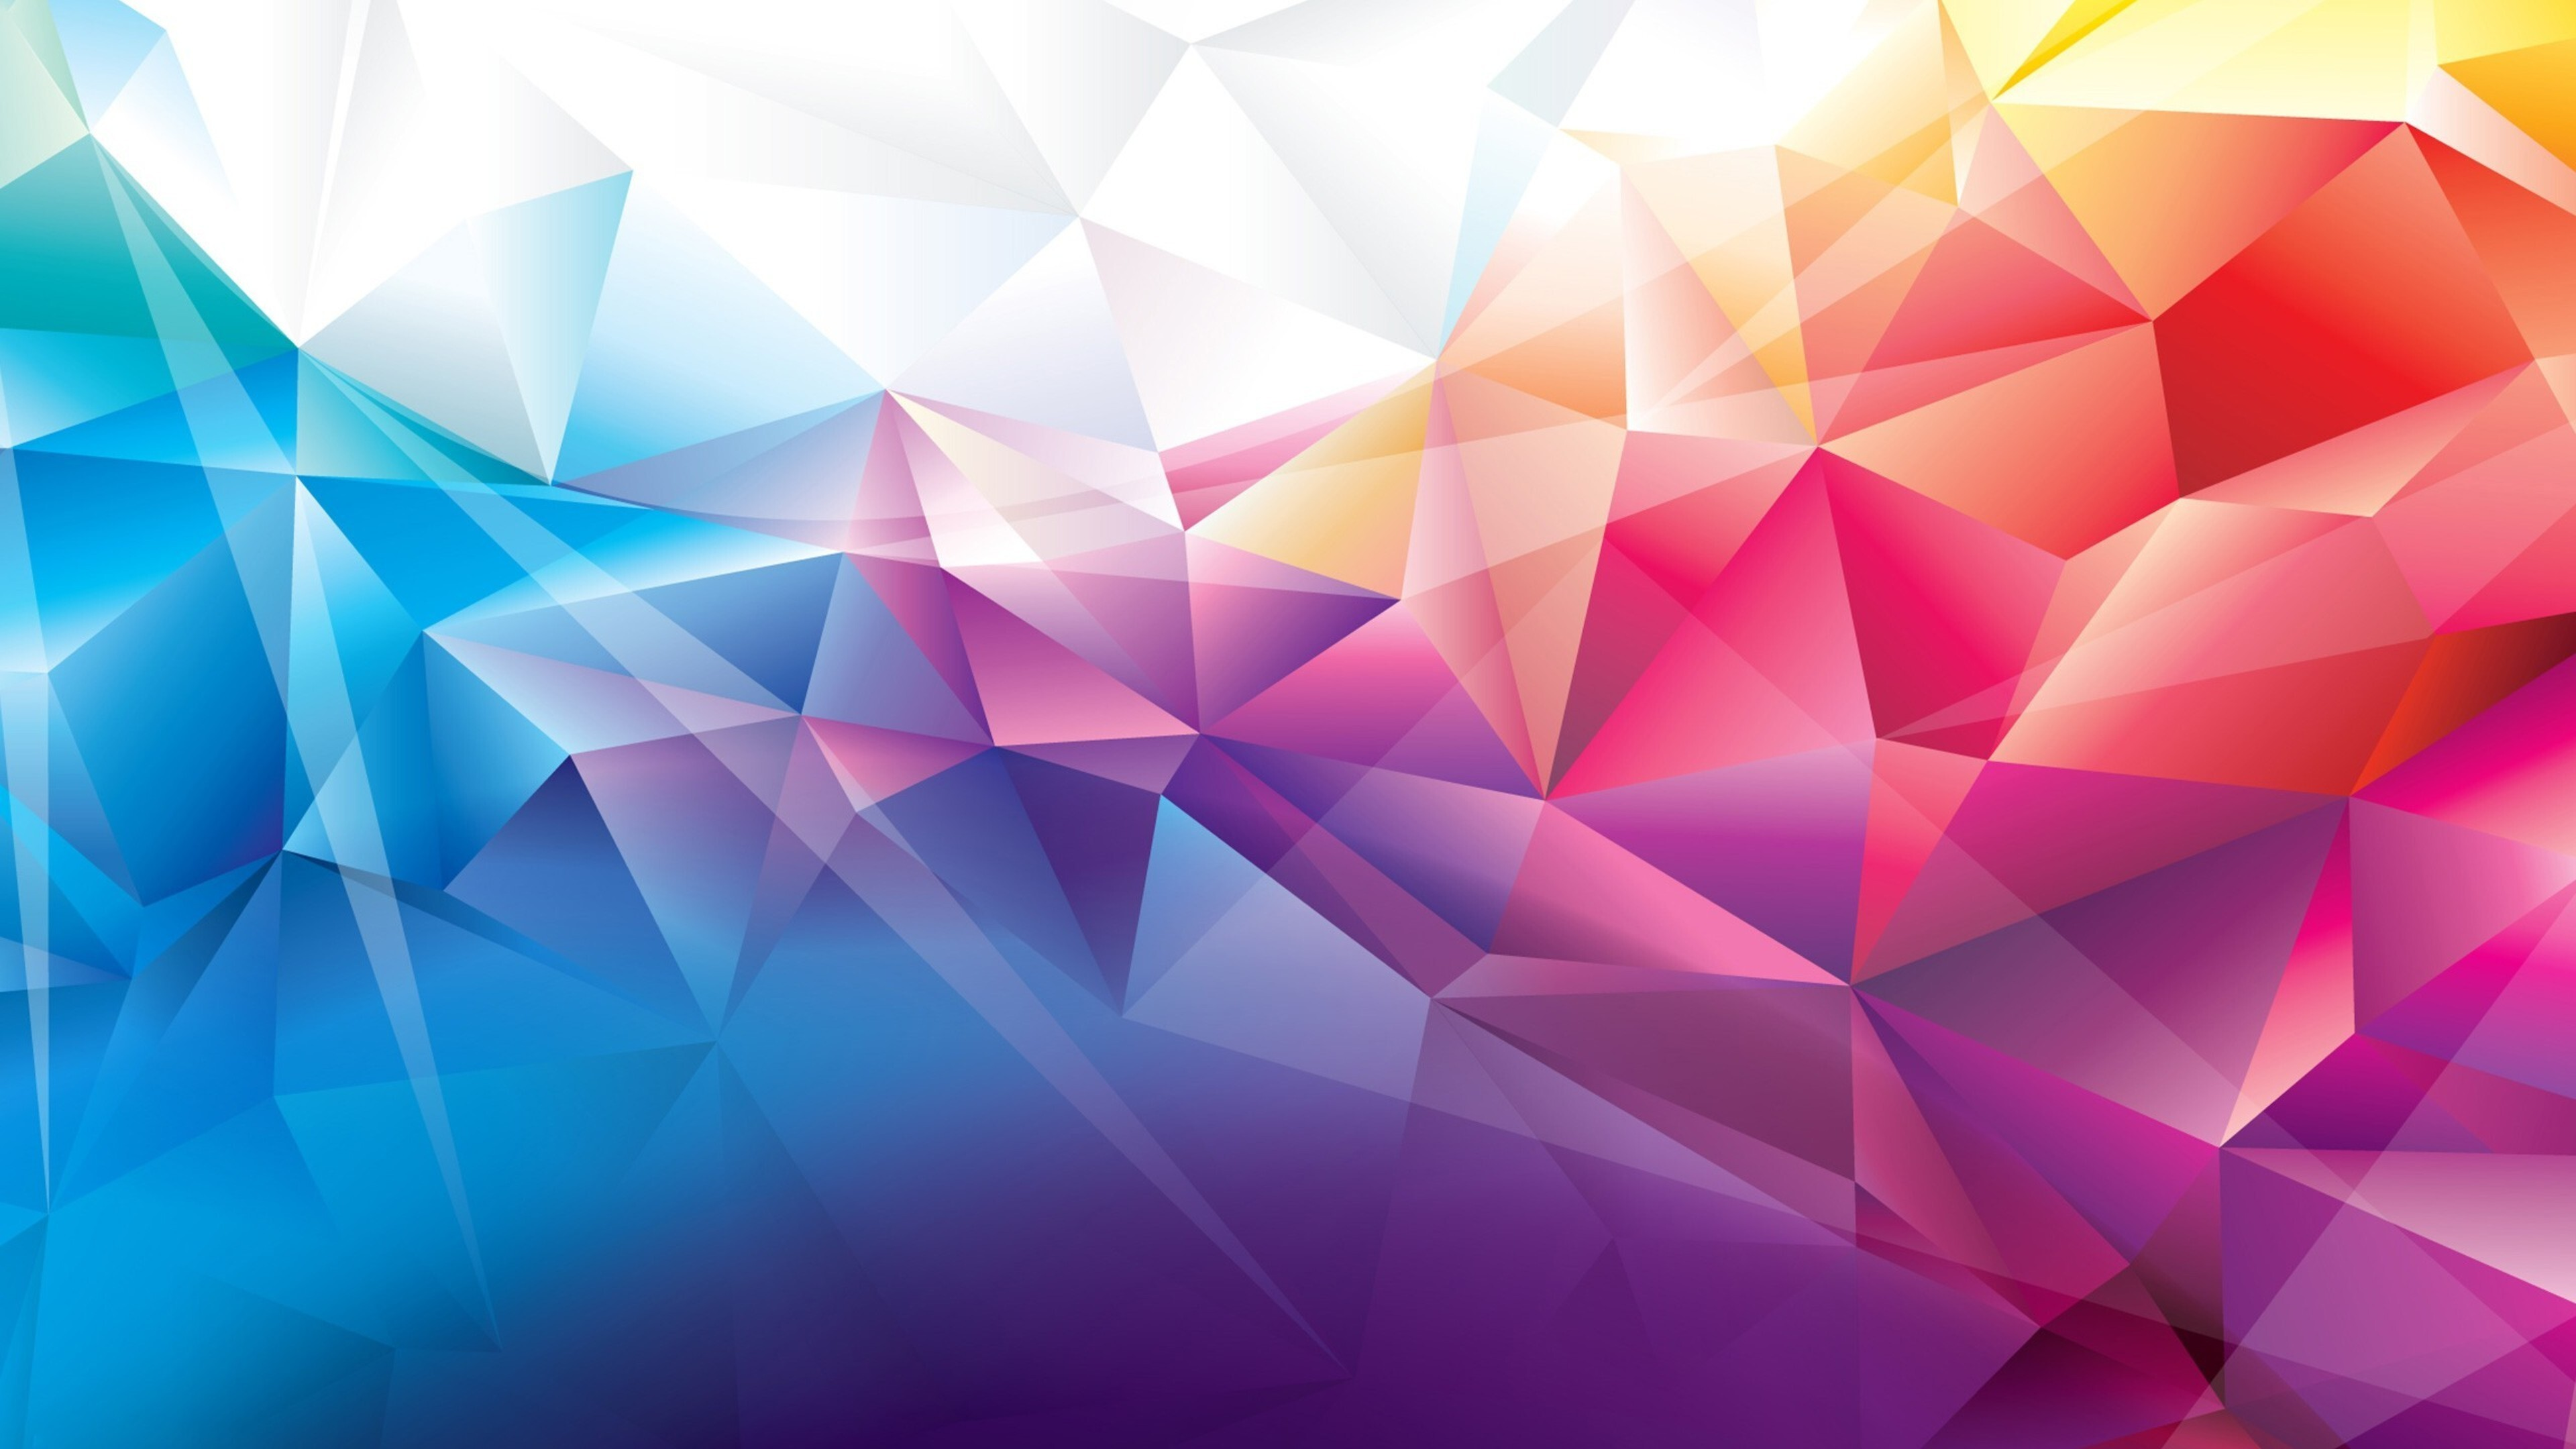 Free Colorful Geometric Wallpaper: 3840x2160 Colorful Polygons 4k HD 4k Wallpapers, Images